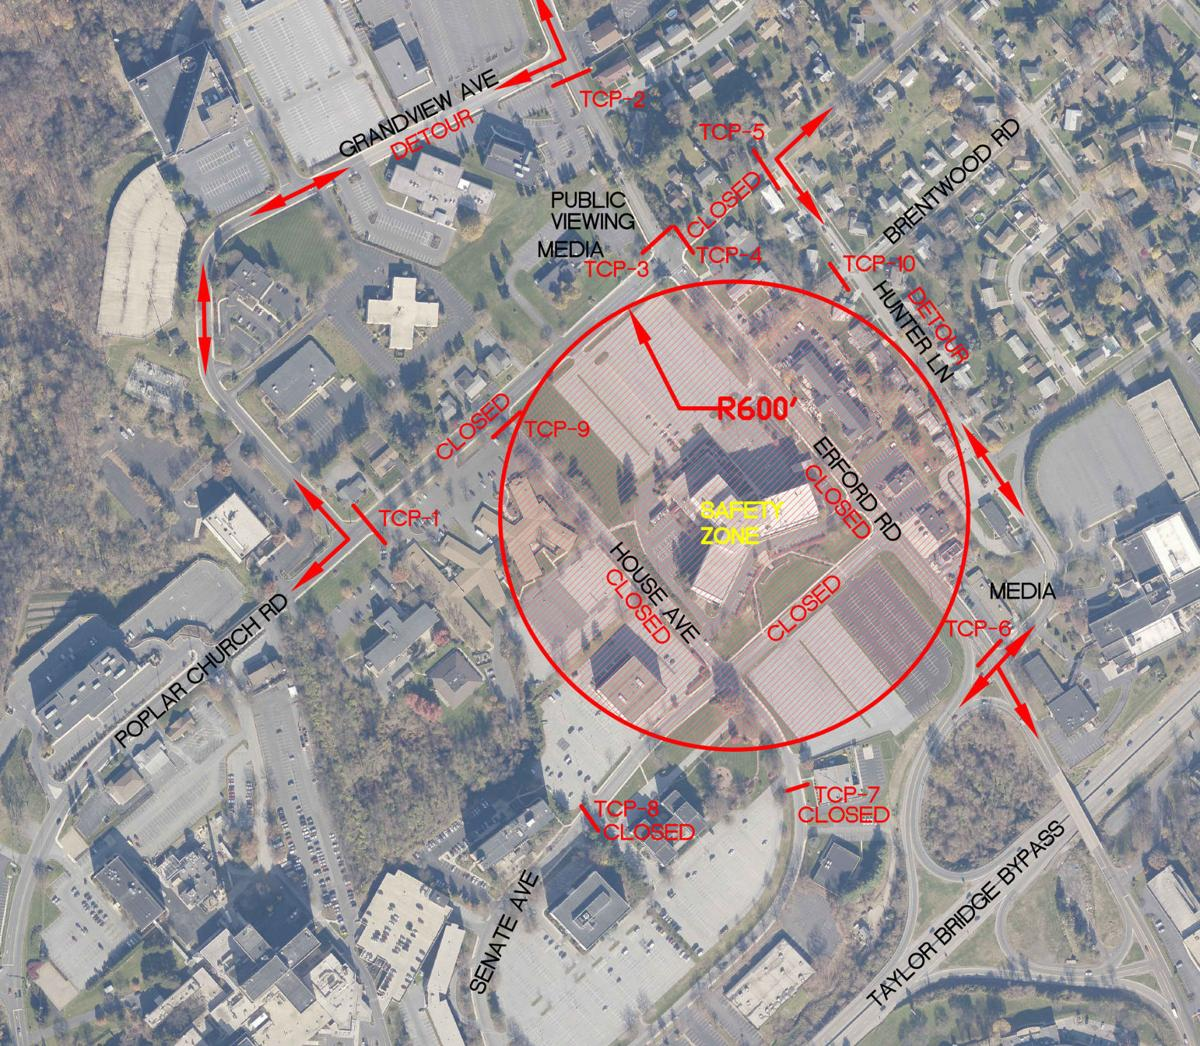 Implosion map